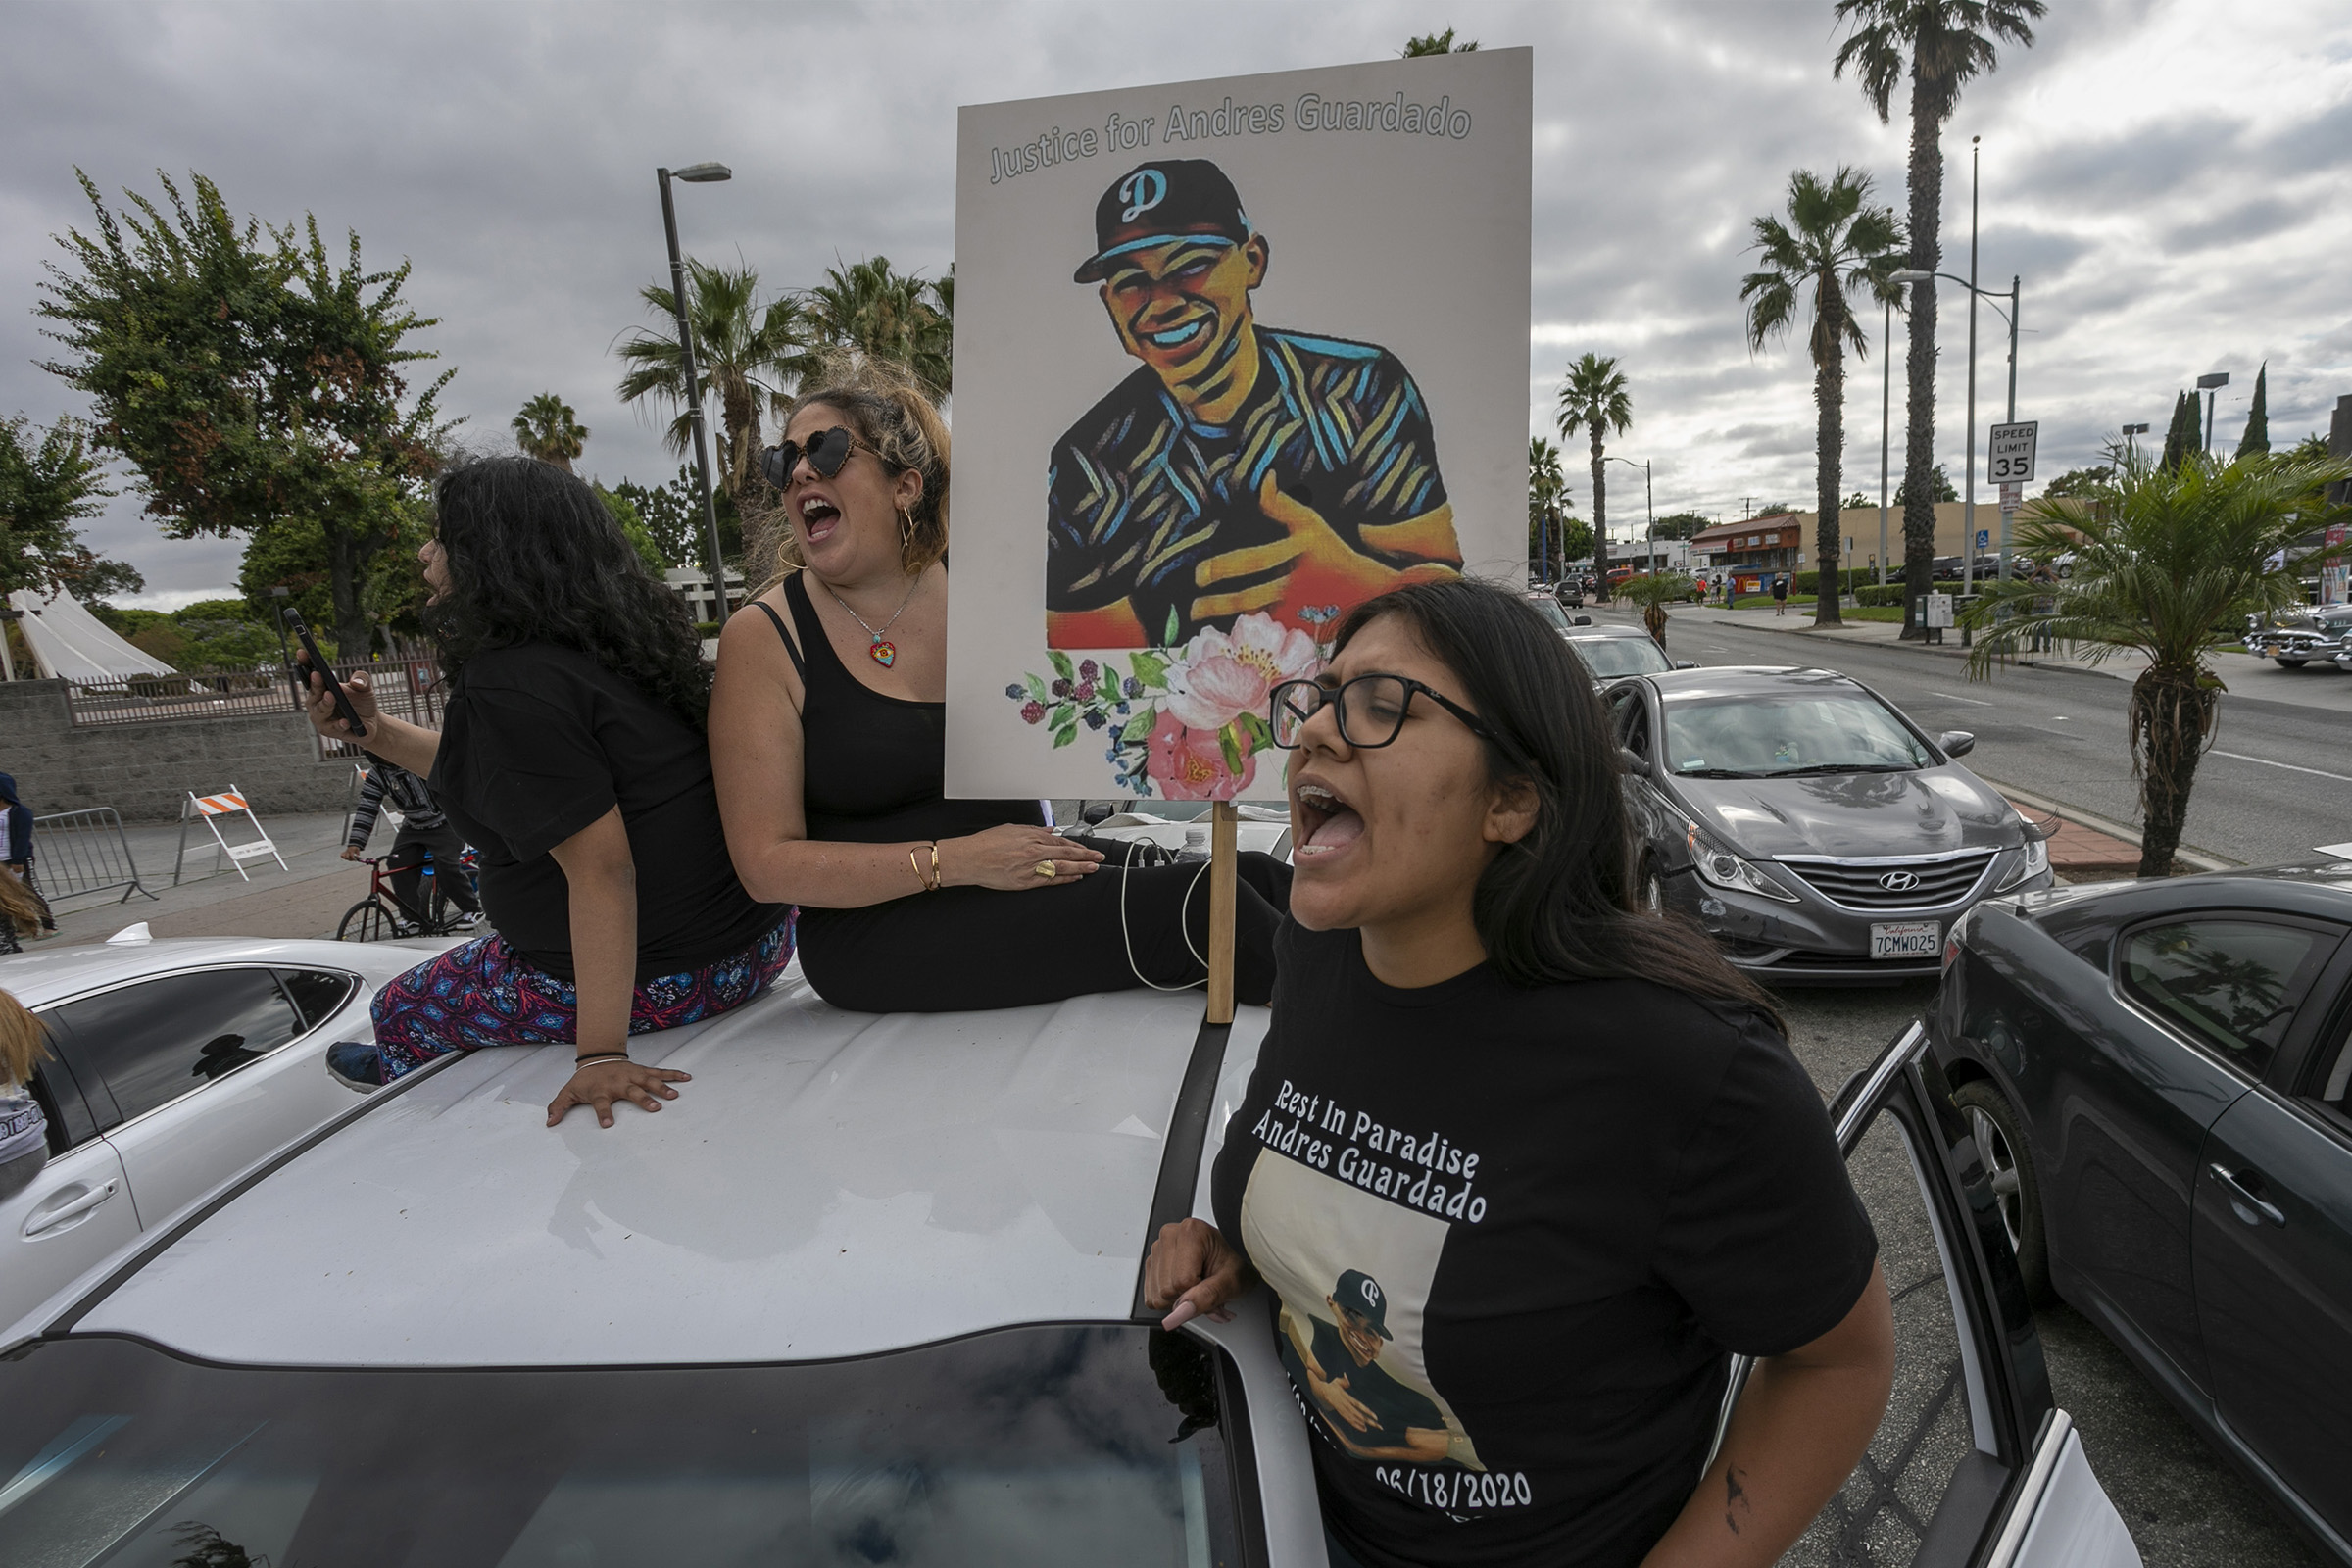 A woman holds a placard as activists and relatives of Andres Guardado, who was shot and killed by a sheriff's deputy in Gardena, rally to call on the city to rescind its policing contract, in Compton, California, on June 28, 2020.